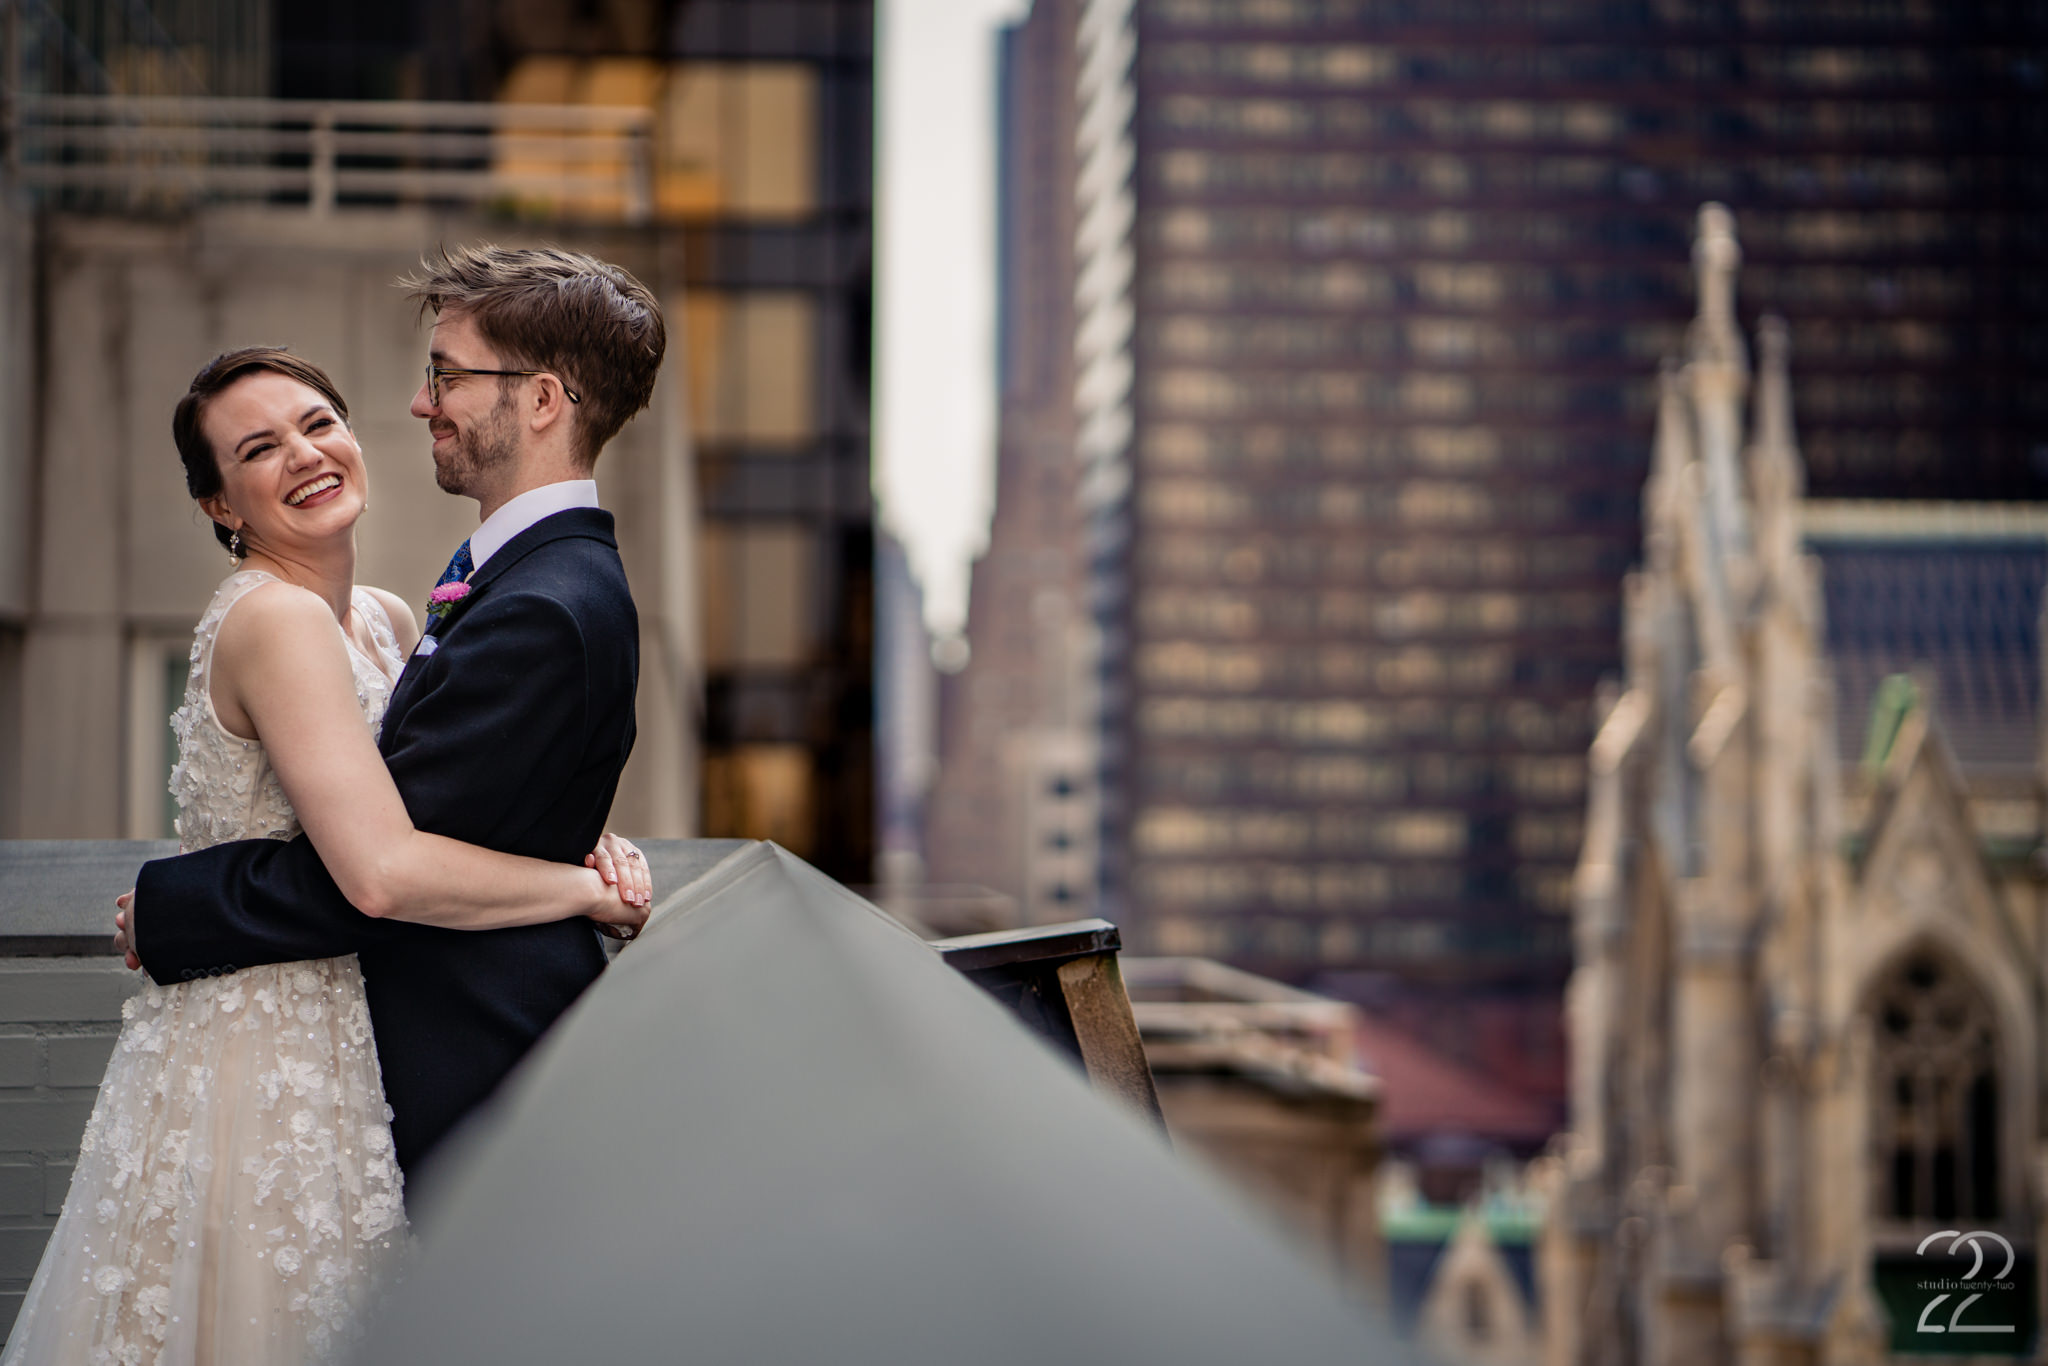 You have planned your wedding to be completely you, so let Studio 22 Photography capture that essence. This NYC wedding wouldn't have been complete without an image of NYC as a background. 3West Club, was an amazing venue for every aspect of the wedding day and was in a stellar location for photographs.